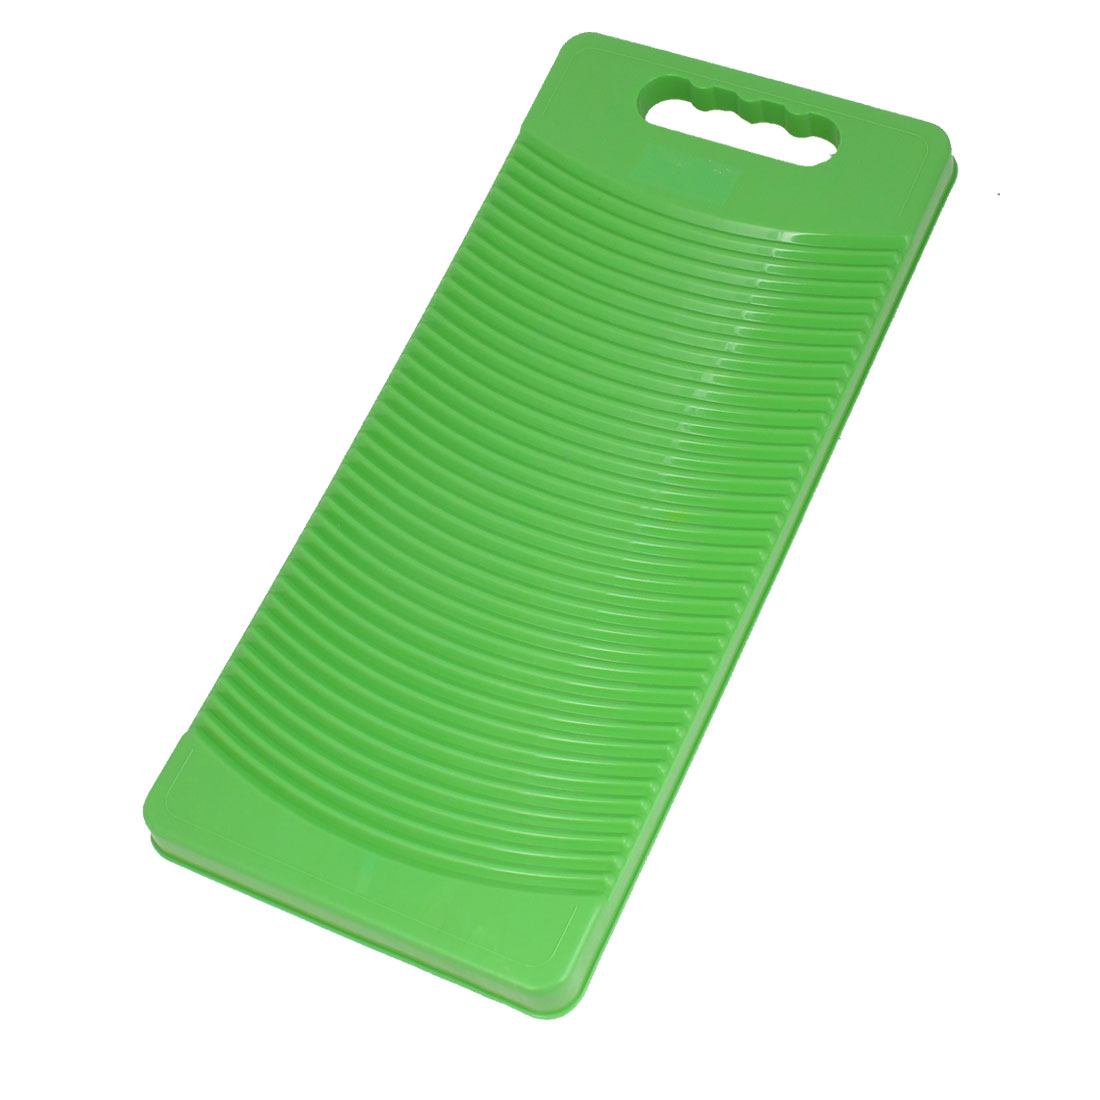 50cm Long Plastic Rectangle Washboard Washing Clothes Laundry Board Green